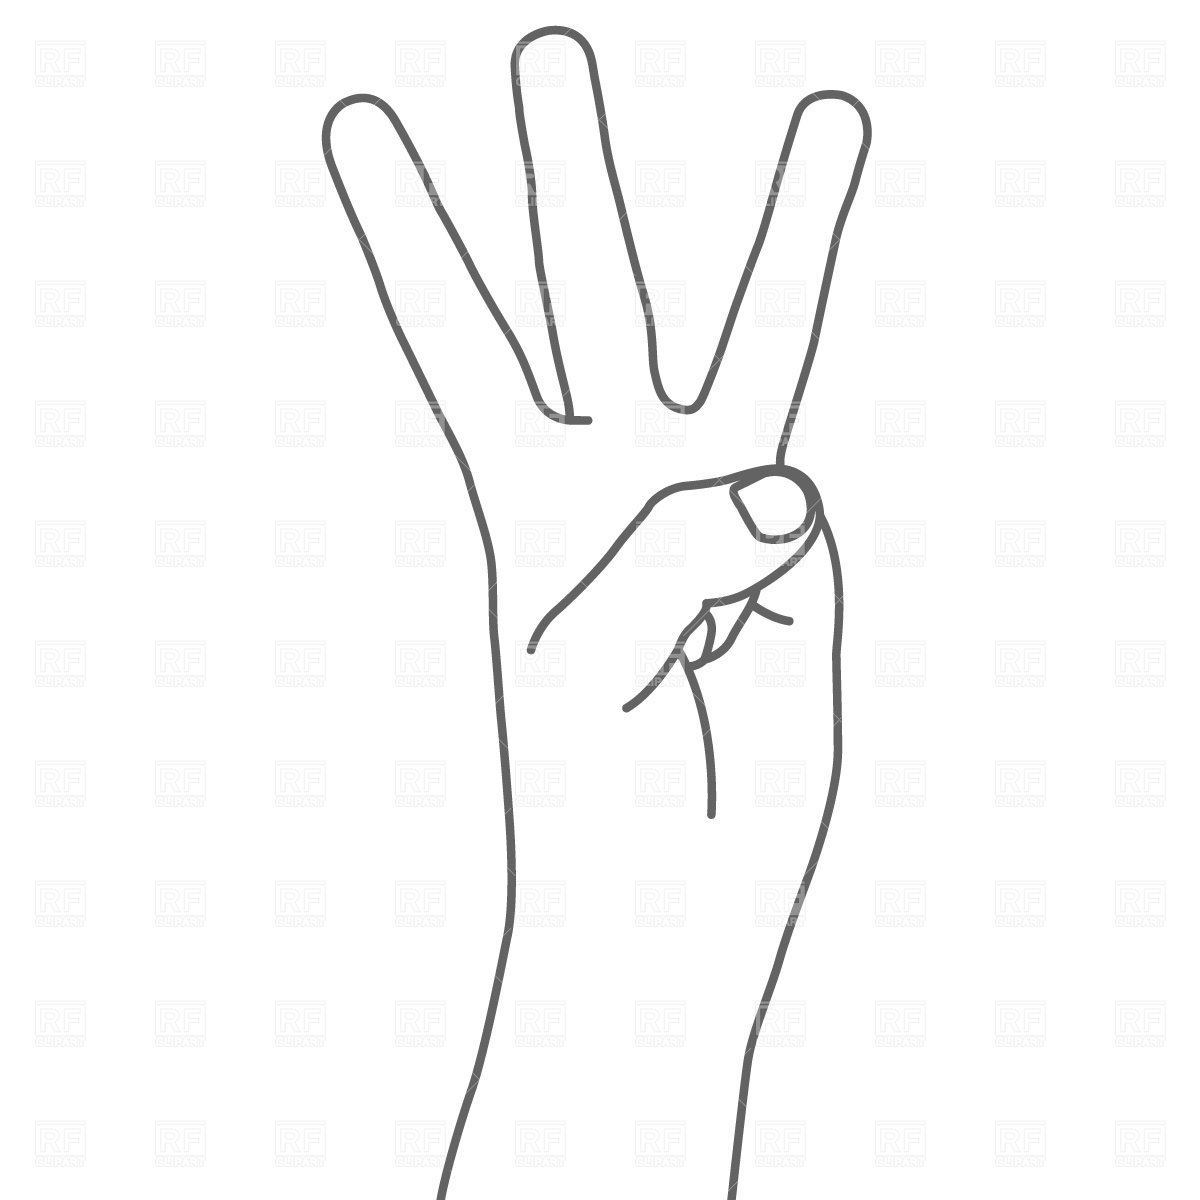 3 Fingers Clipart - Clipart Kid